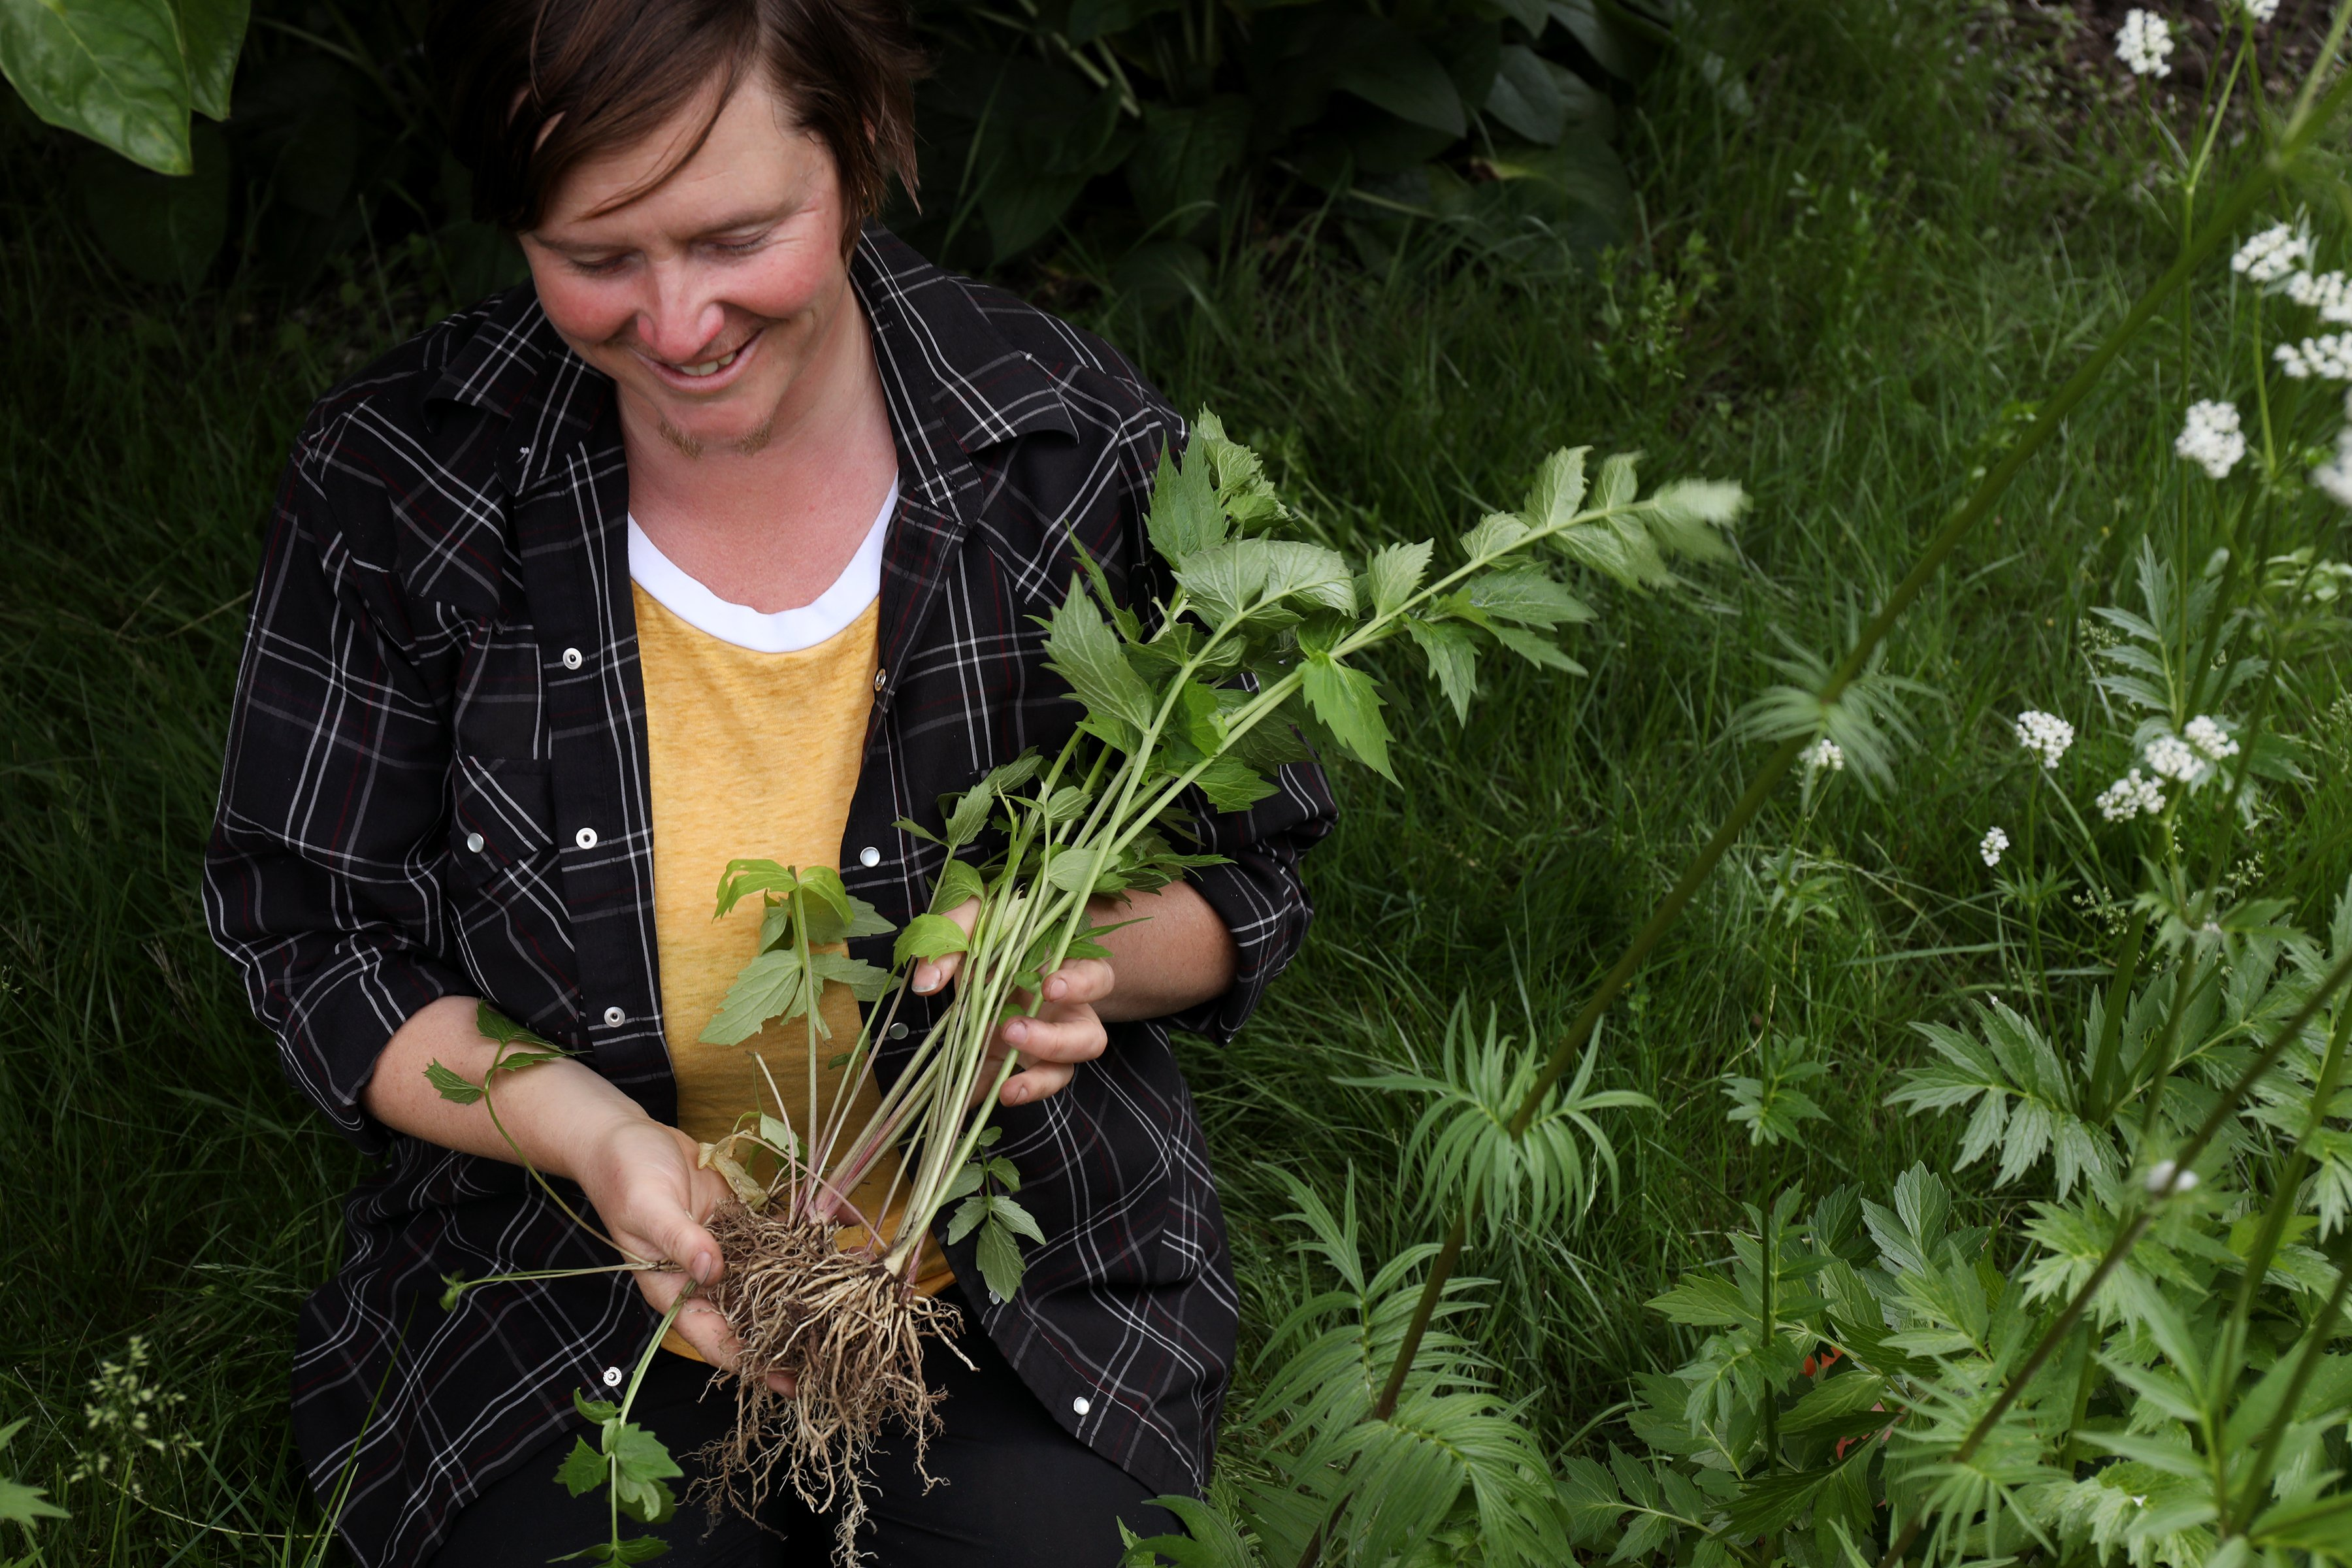 Plant biologist, Heron Brae, identifies botanicals for Mountain Rose Herbs to keep in their herb library for reference material. Here she harvests wild valerian after correctly identifying the species.